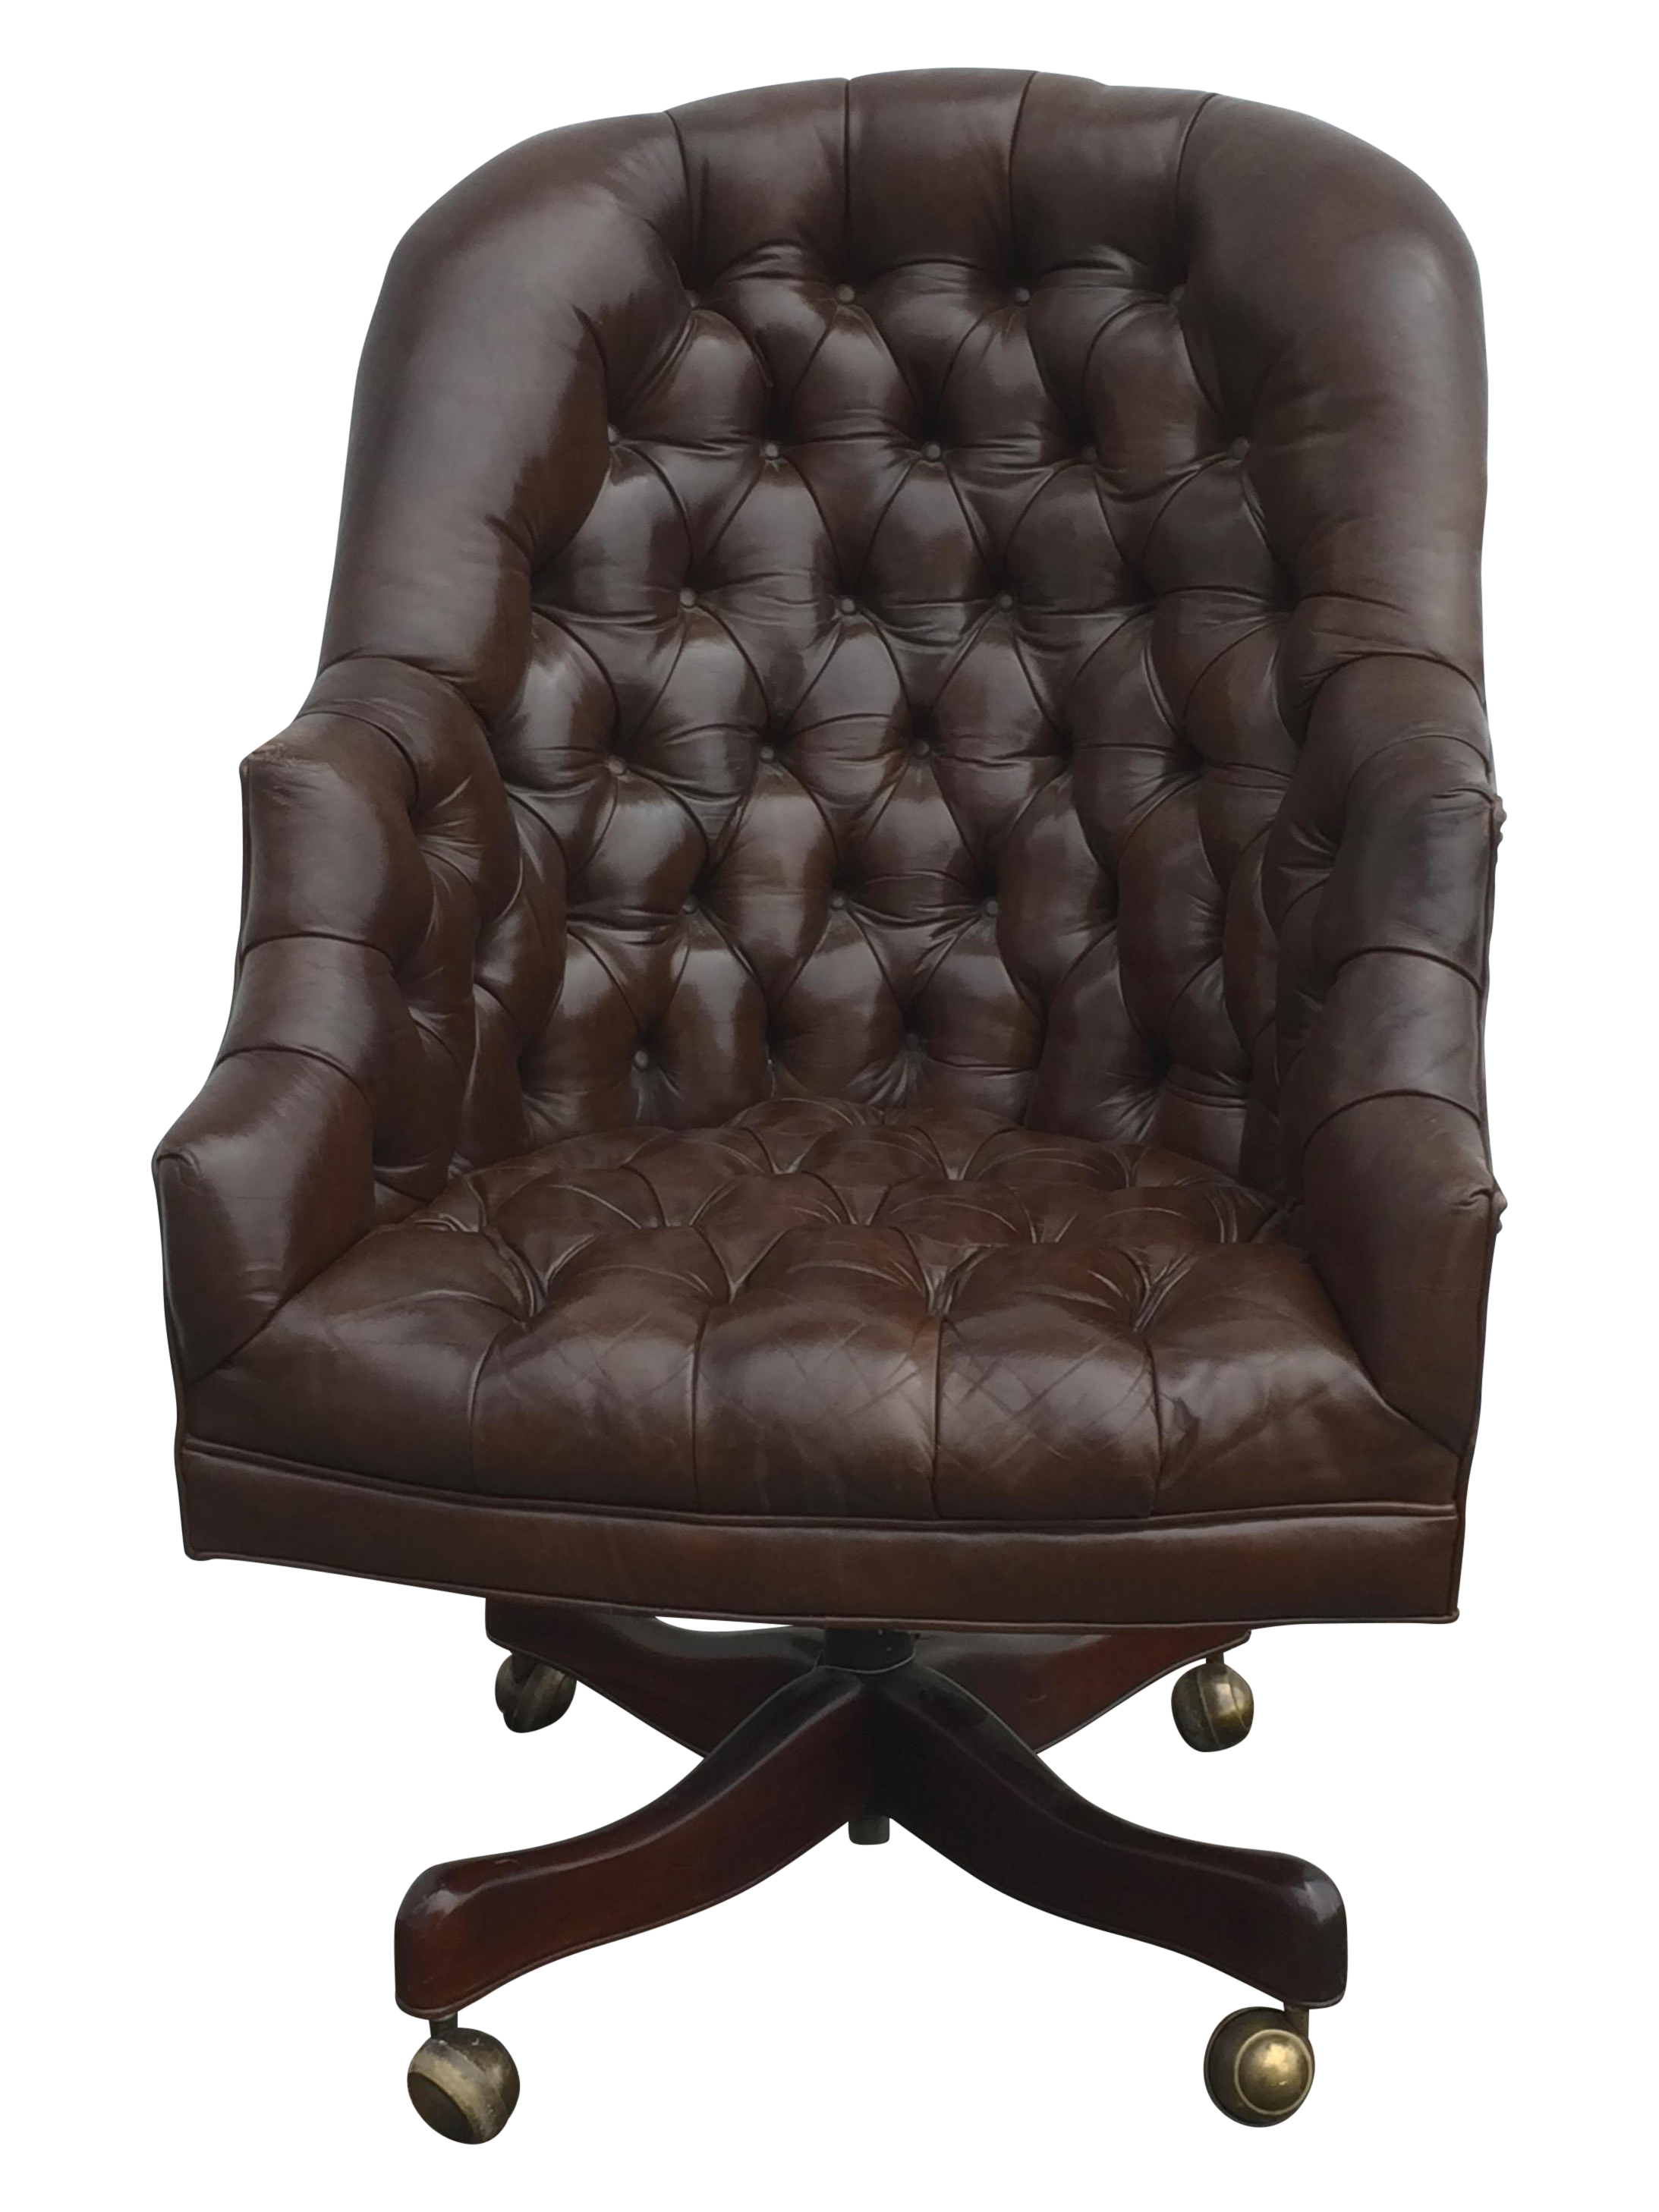 Vintage Tufted Brown Swivel fice Chair